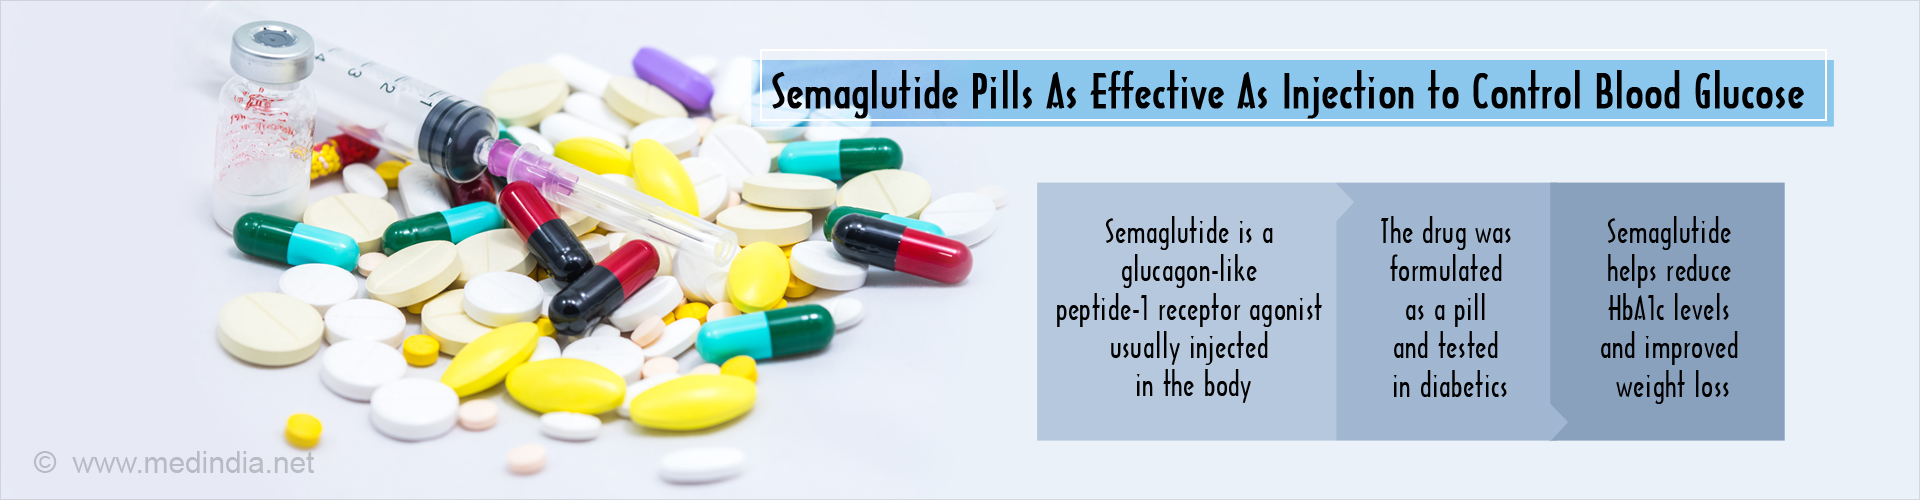 Semaglutide Effective in Blood Sugar Control, Soon To Be Available as Pills